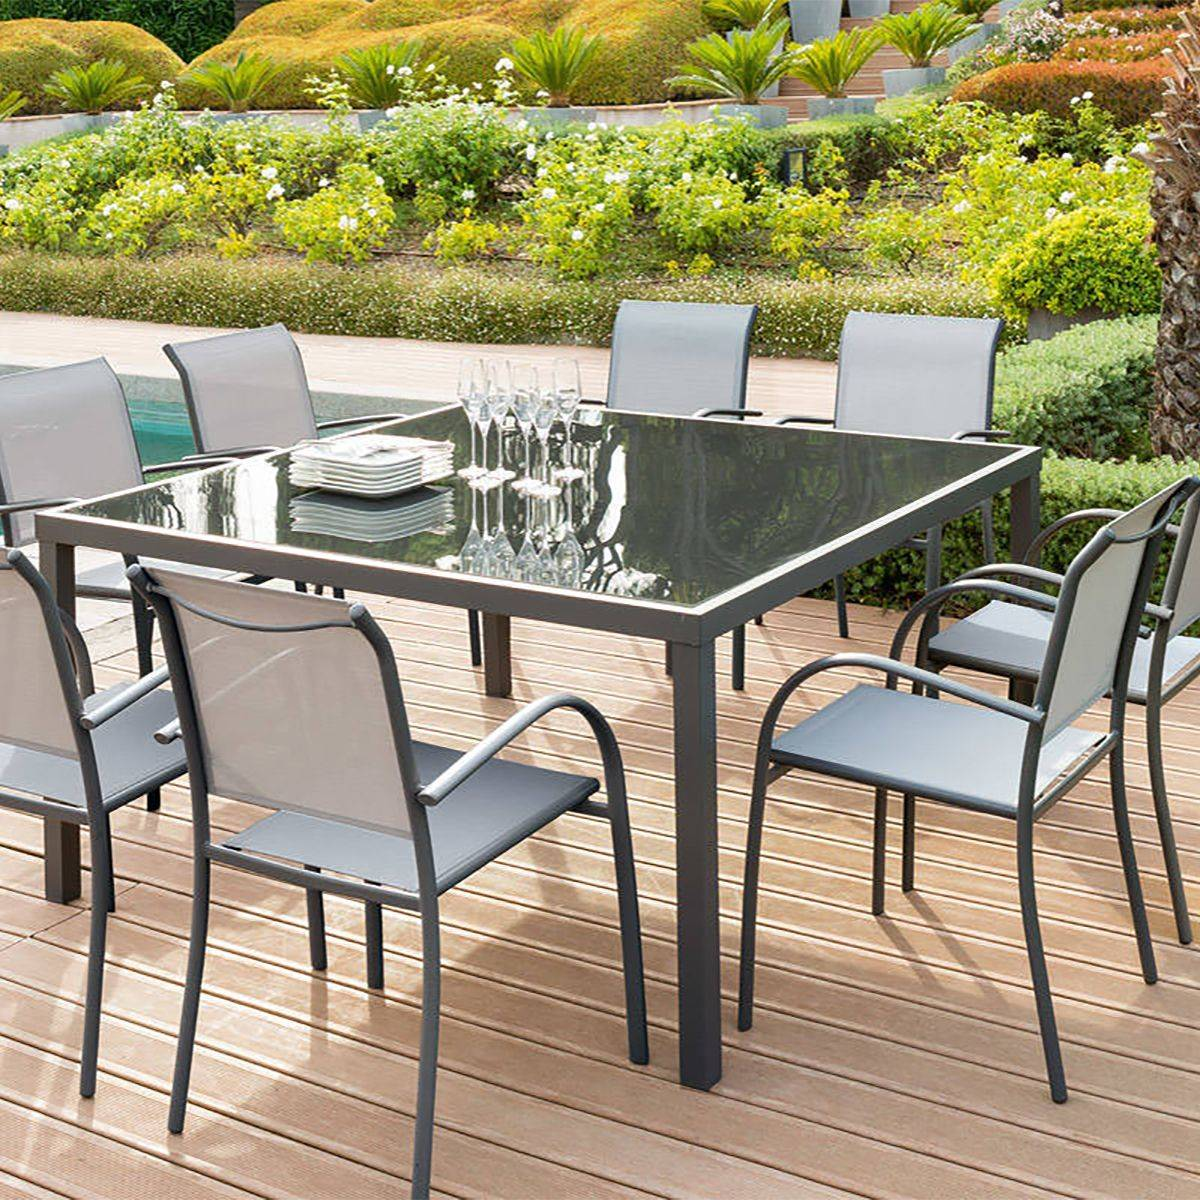 Table de jardin carr e piazza verre anthracite graphite - Table carree en verre ...